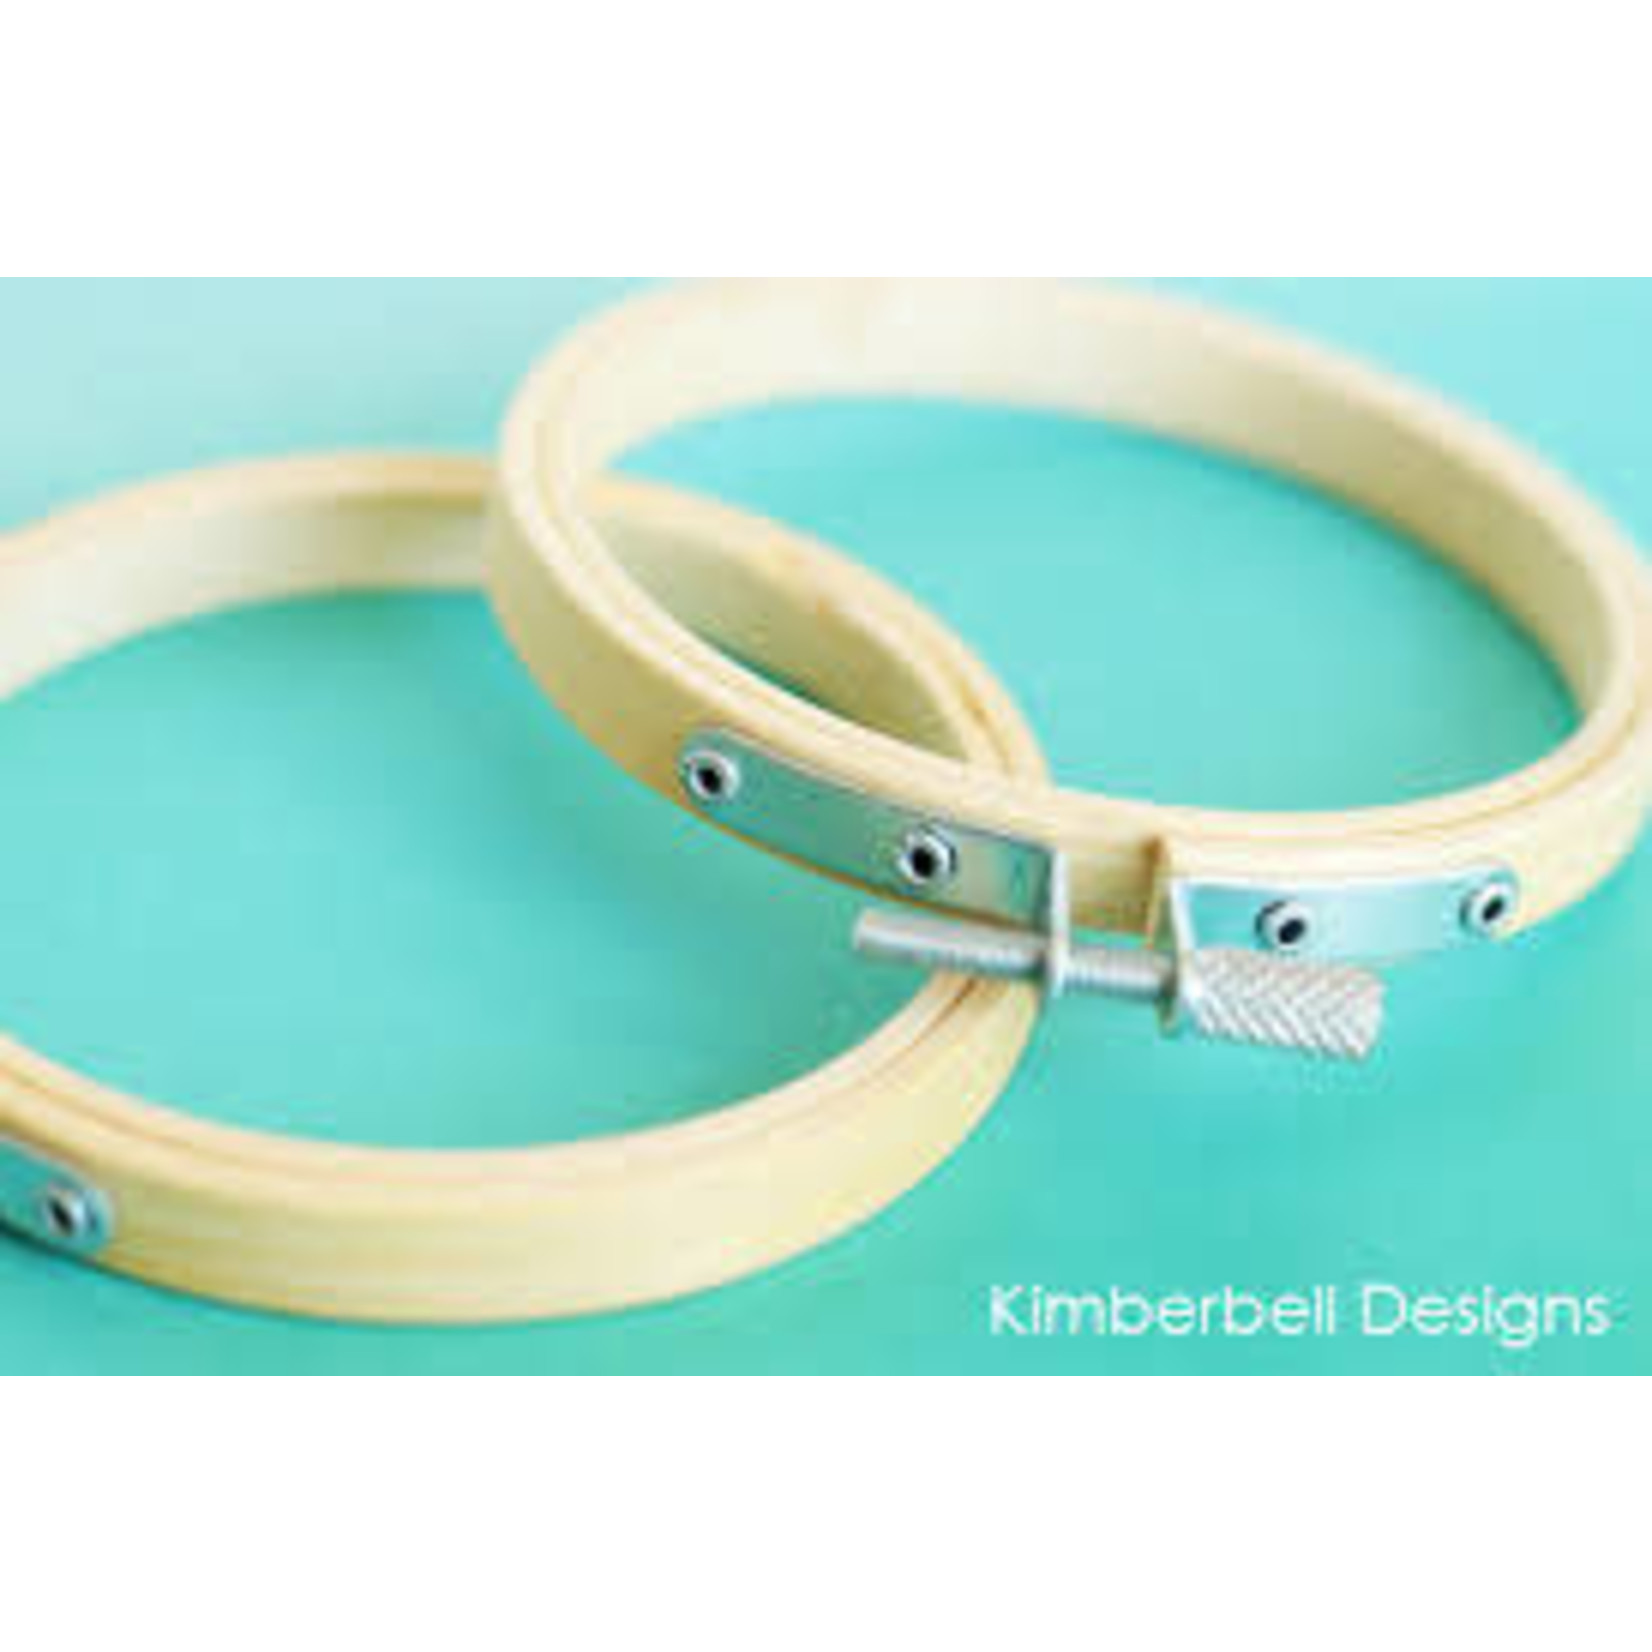 KIMBERBELL DESIGNS Bamboo Hoops Set of 2 3.5""